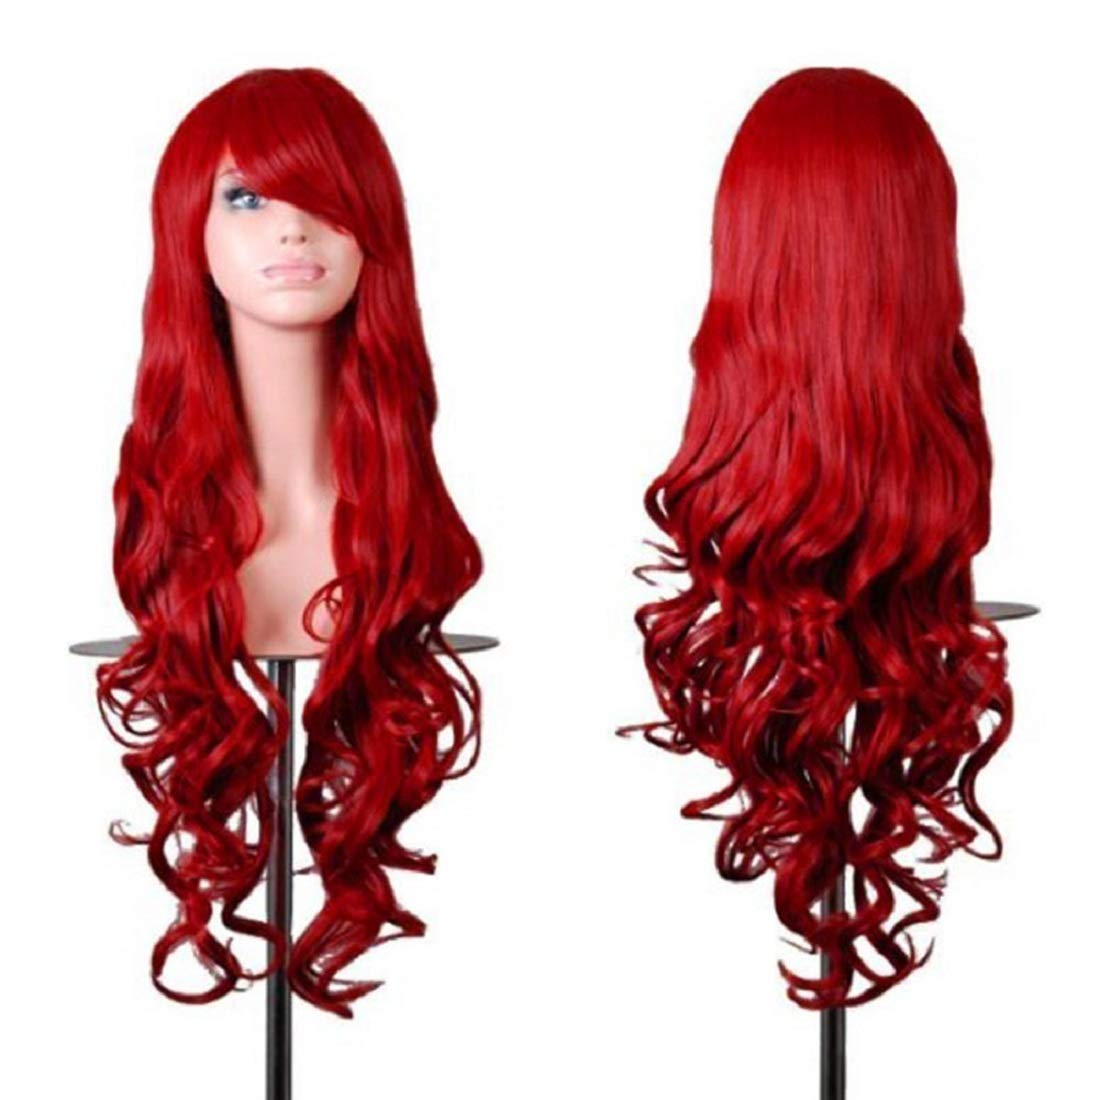 """Wigs 32"""" Women Wig Long Hair Heat Resistant Spiral Curly Cosplay Wig Anime Fashion Wavy Curly Cosplay Daily Party Red"""